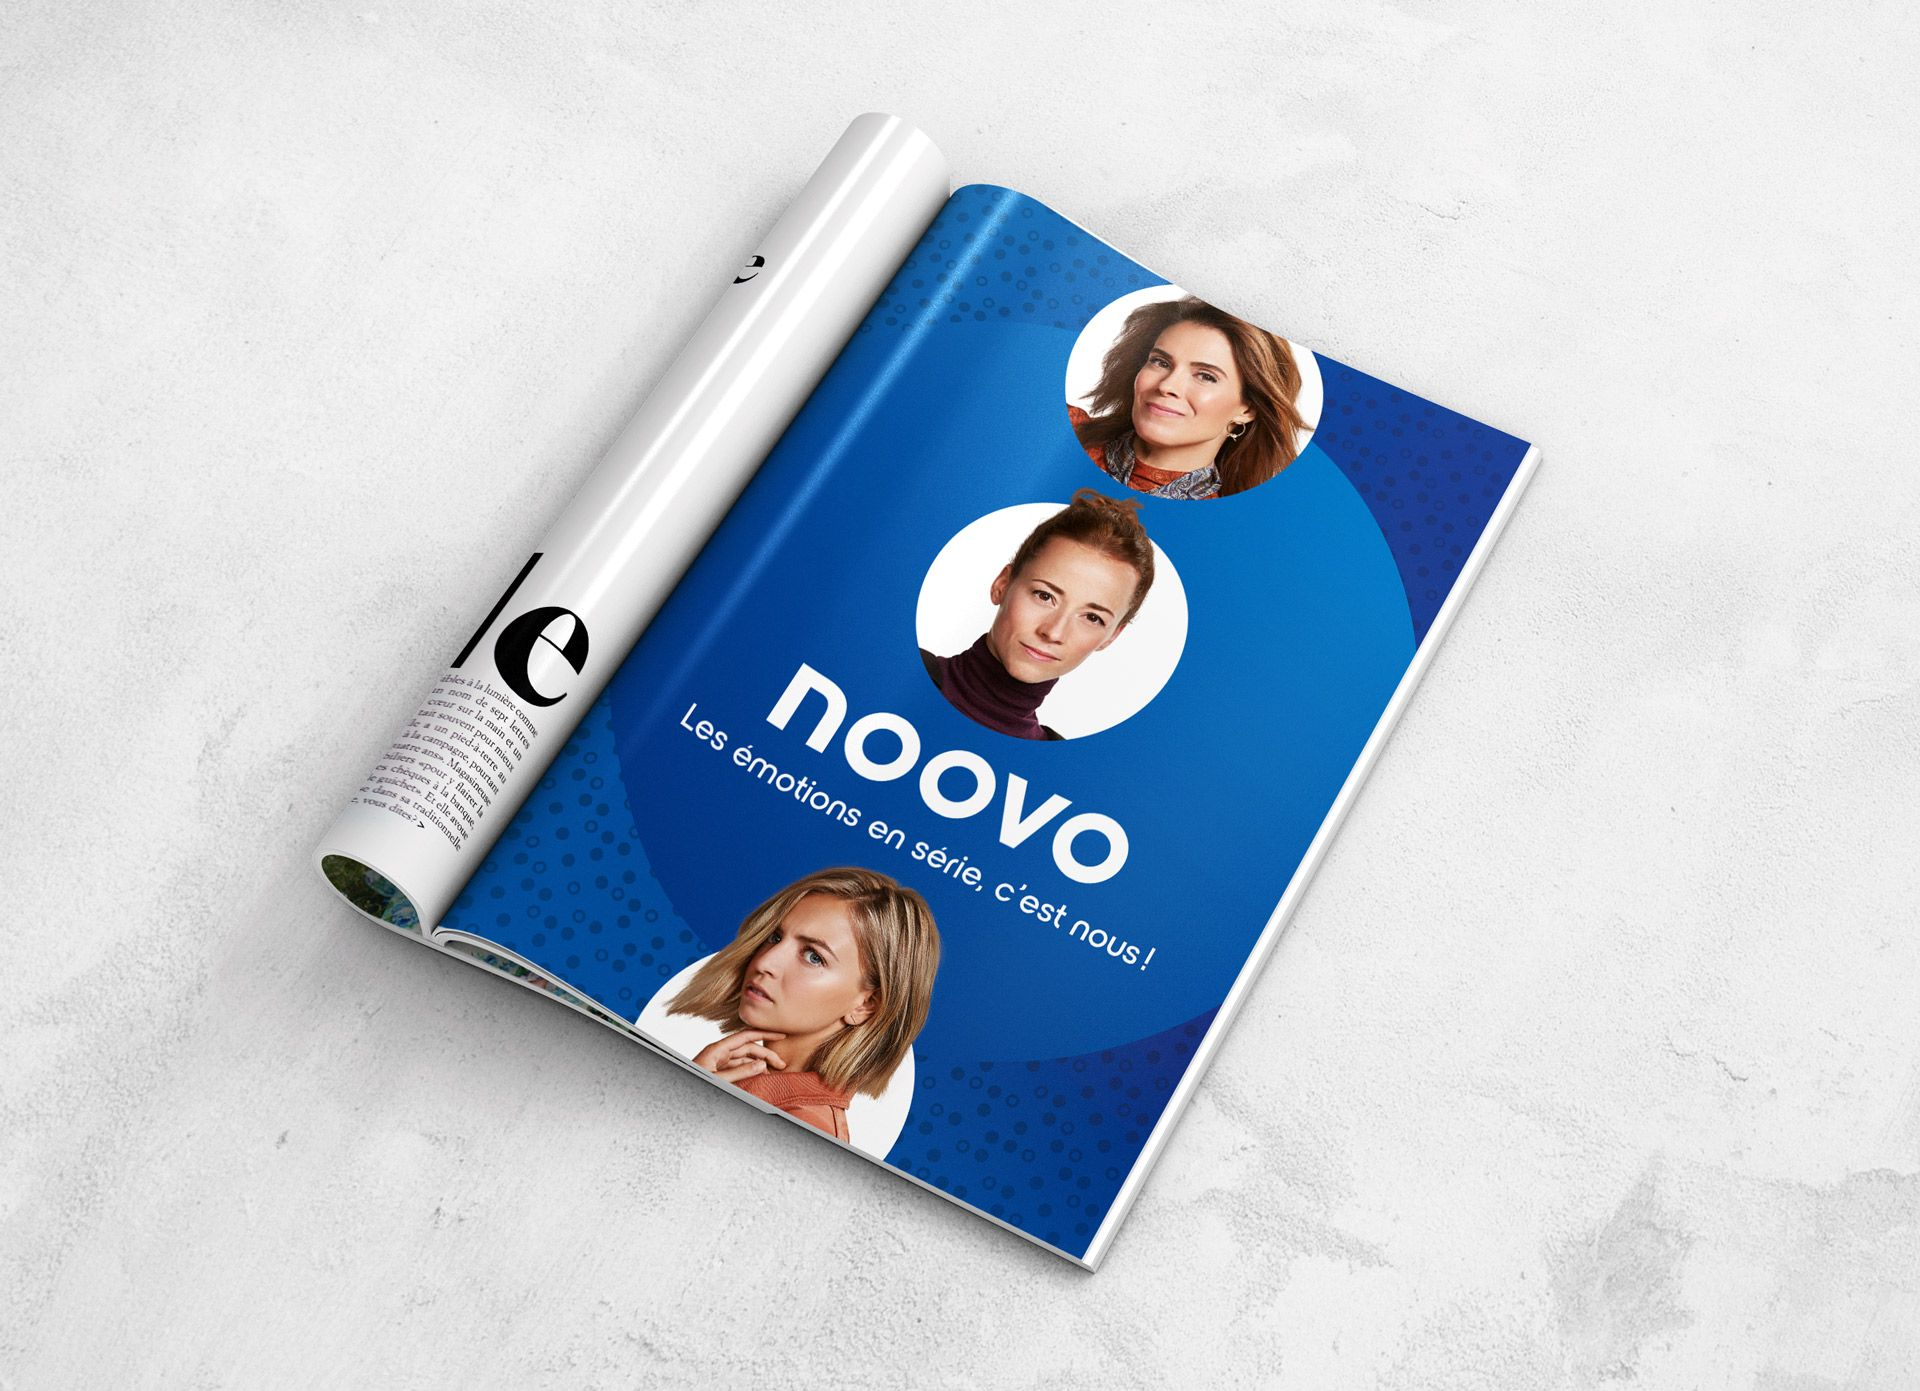 magazine mockup of advertising for Noovo photographed by Jocelyn Michel for Noovo Bell Media